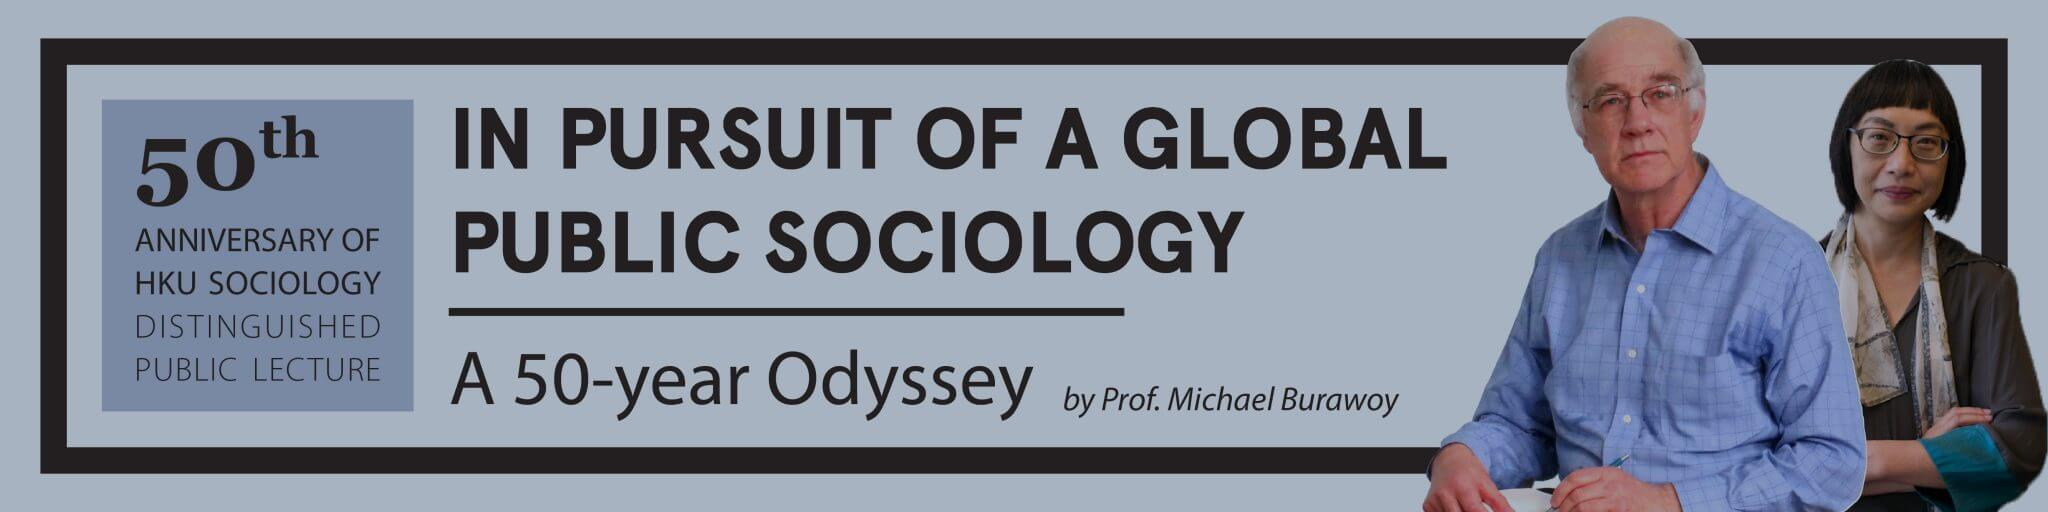 In pursuit of public sociology: A 50 year odyssey